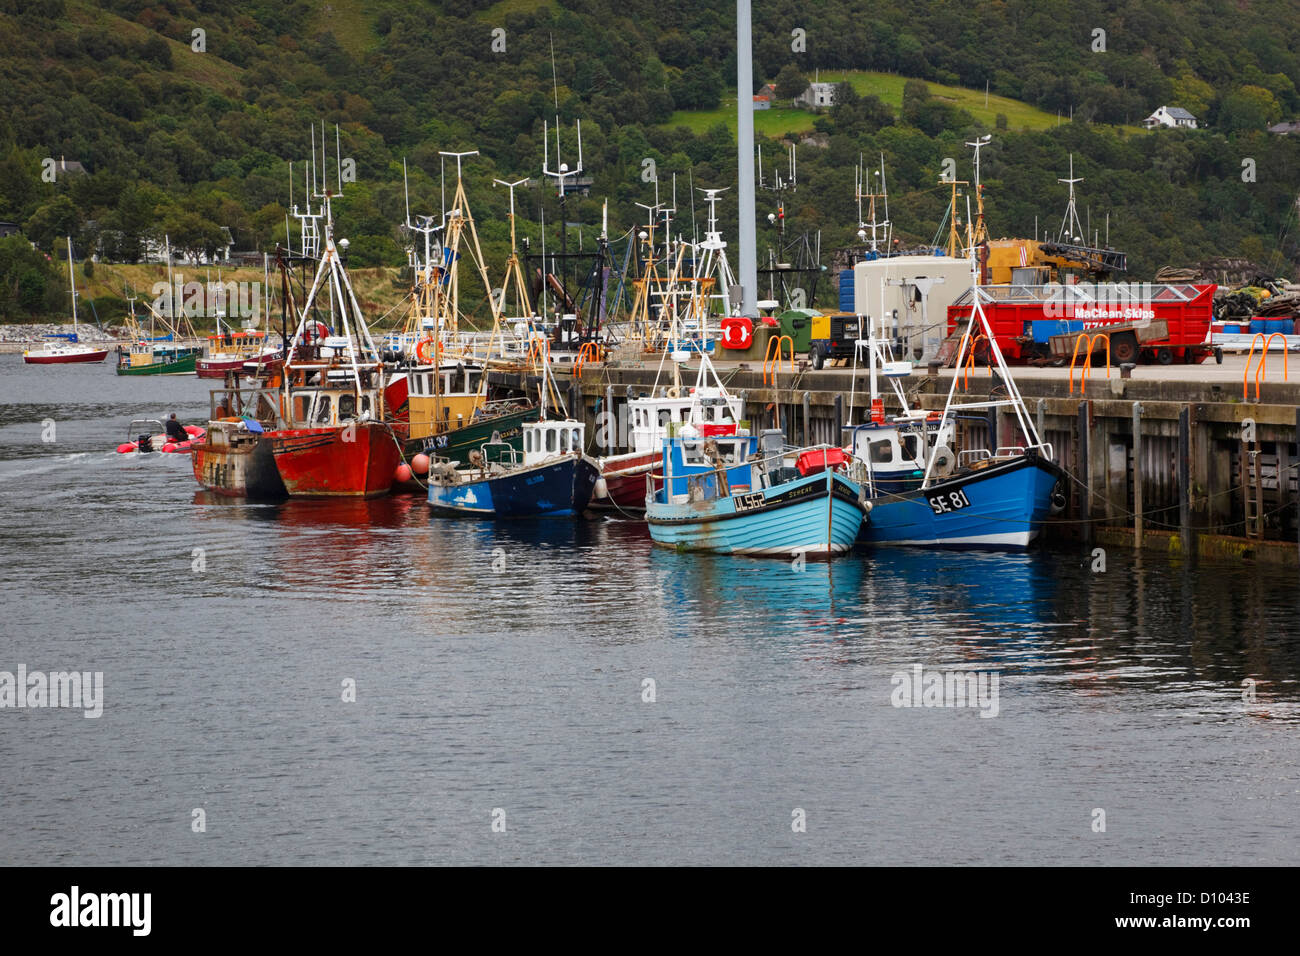 Fishing boats at the quayside, Ullapool harbour, Ross and Crometary, Highlands, Scotland - Stock Image